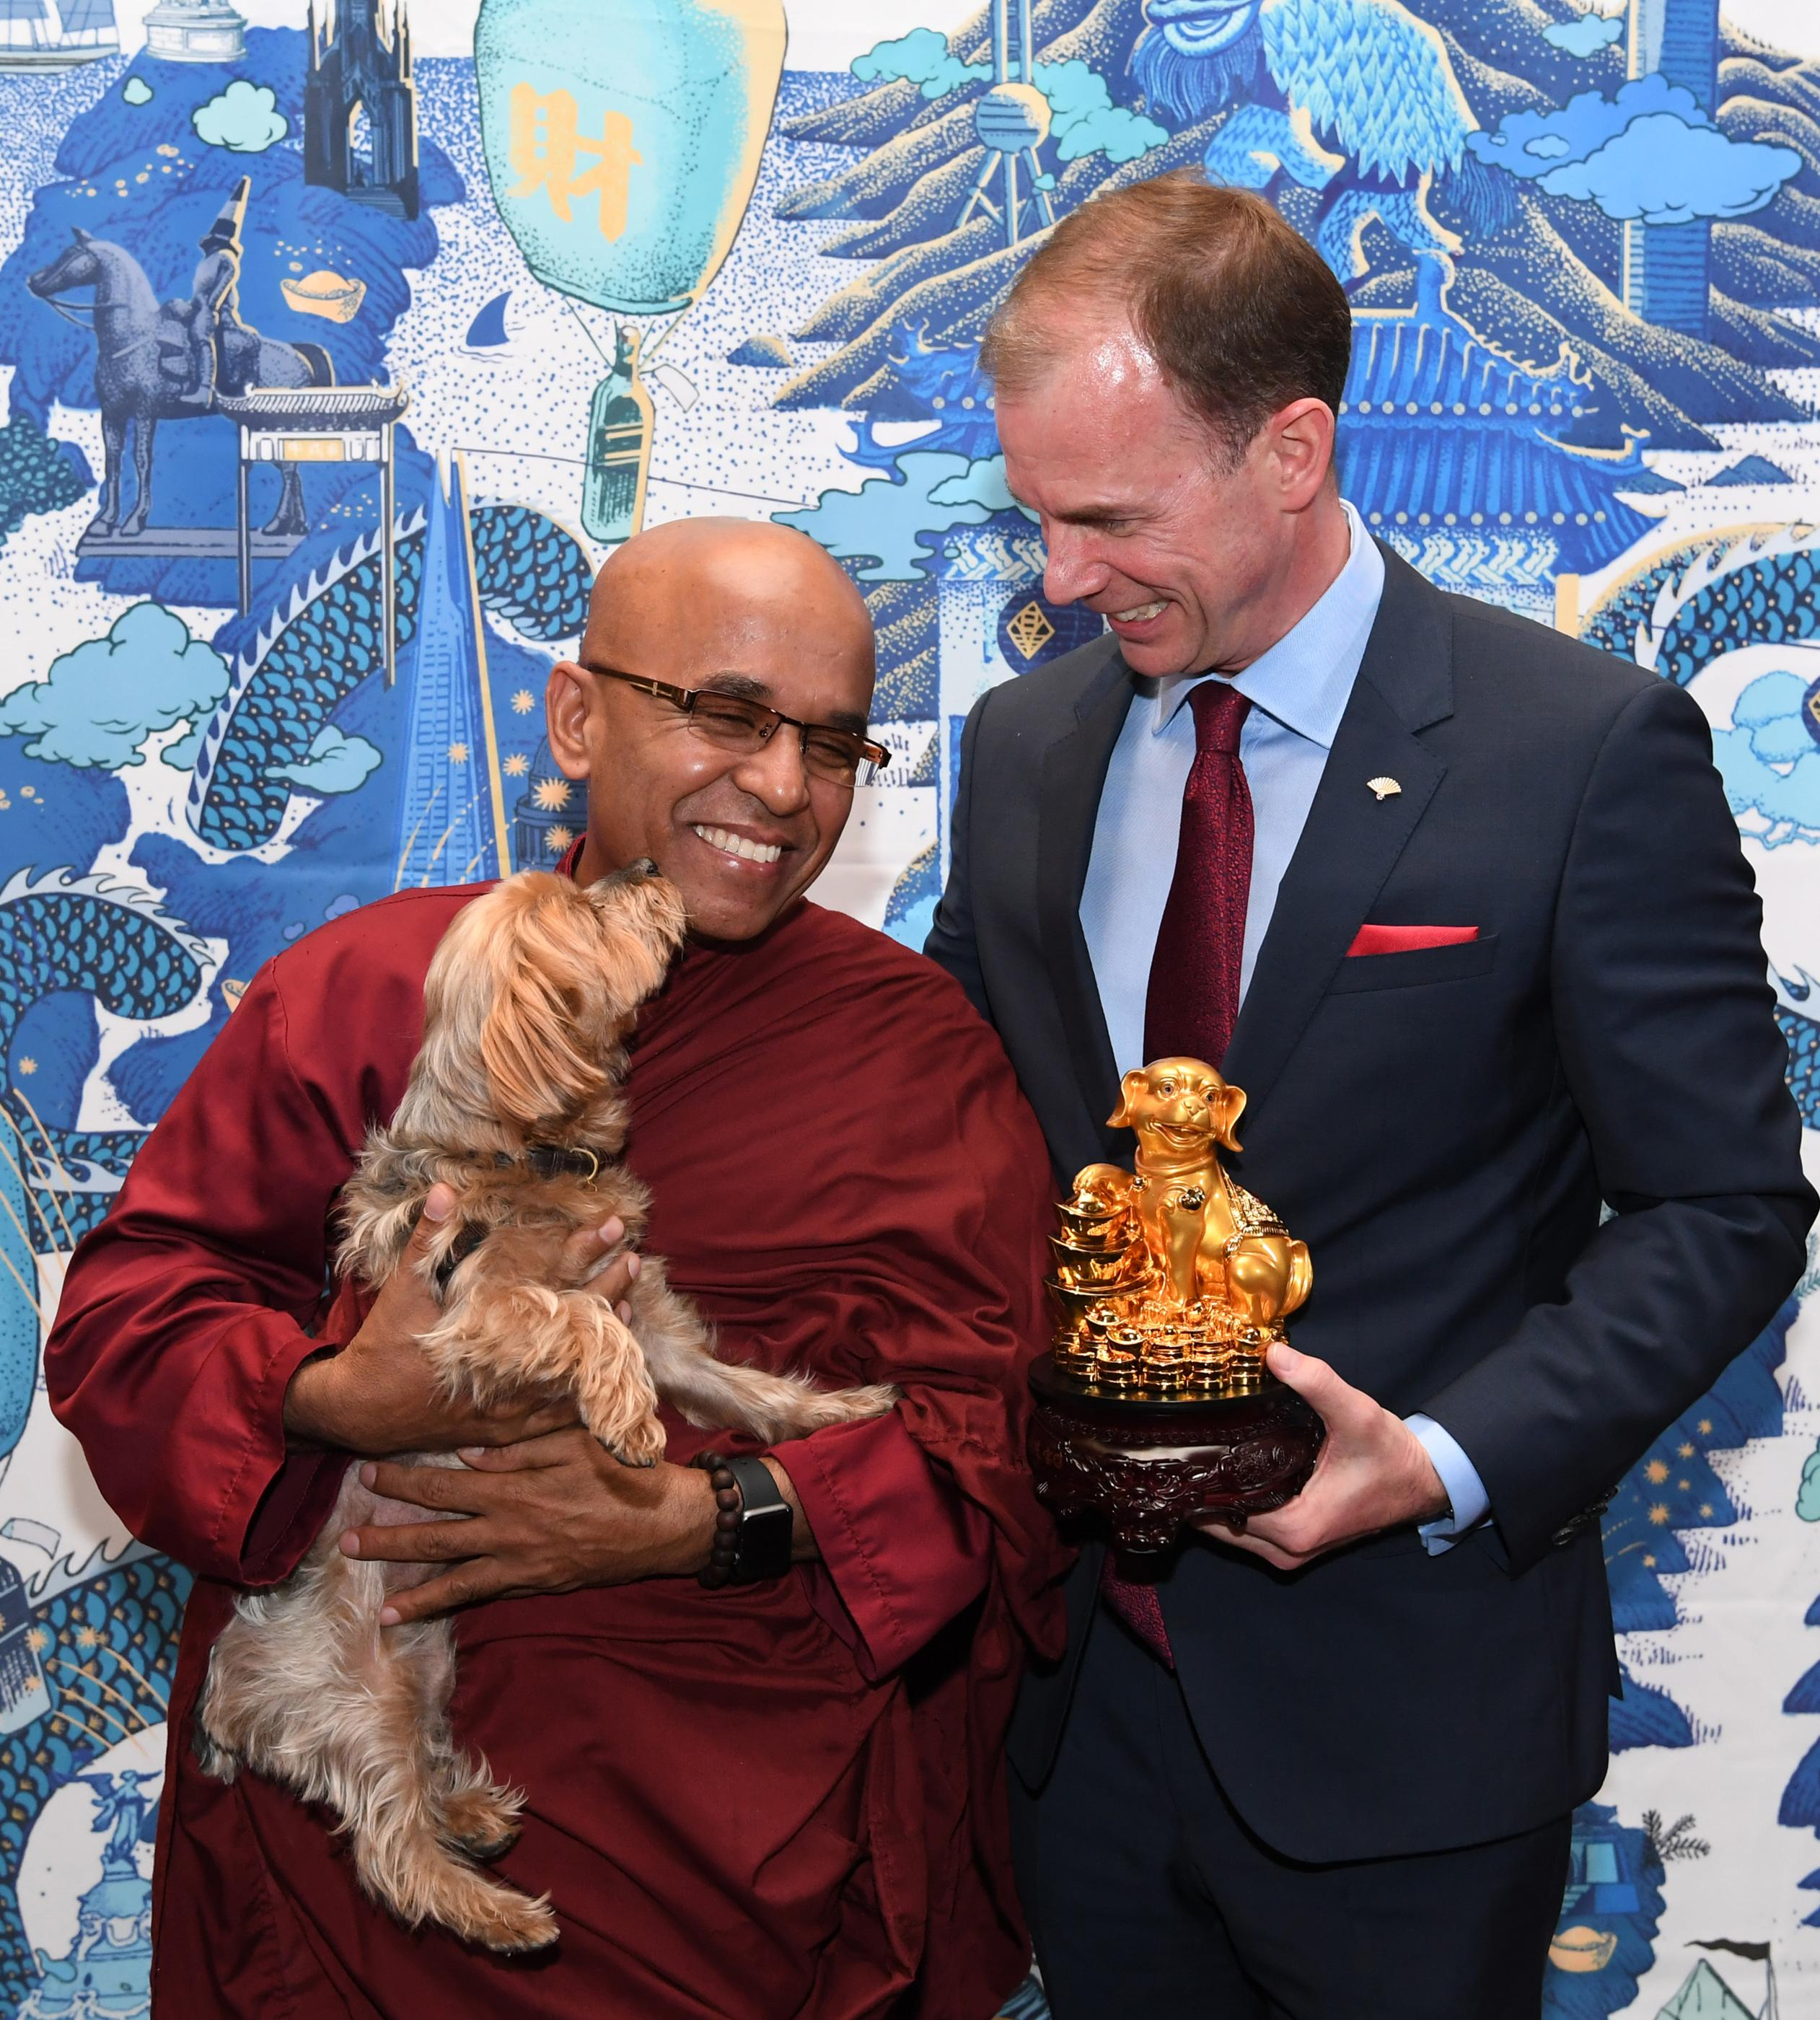 Bhante Sujatha of the Blue Lotus Buddhist Temple gets a kiss from DJ the dog while his owner Donald Bowman, General Manager Mandarin Oriental looks on as the Mandarin Oriental, Las Vegas celebrates the Chinese New Year, Year of the Dog with a special Yusheng Toss presentation. Thursday, February 15, 2018. CREDIT: Glenn Pinkerton/Las Vegas News Bureau